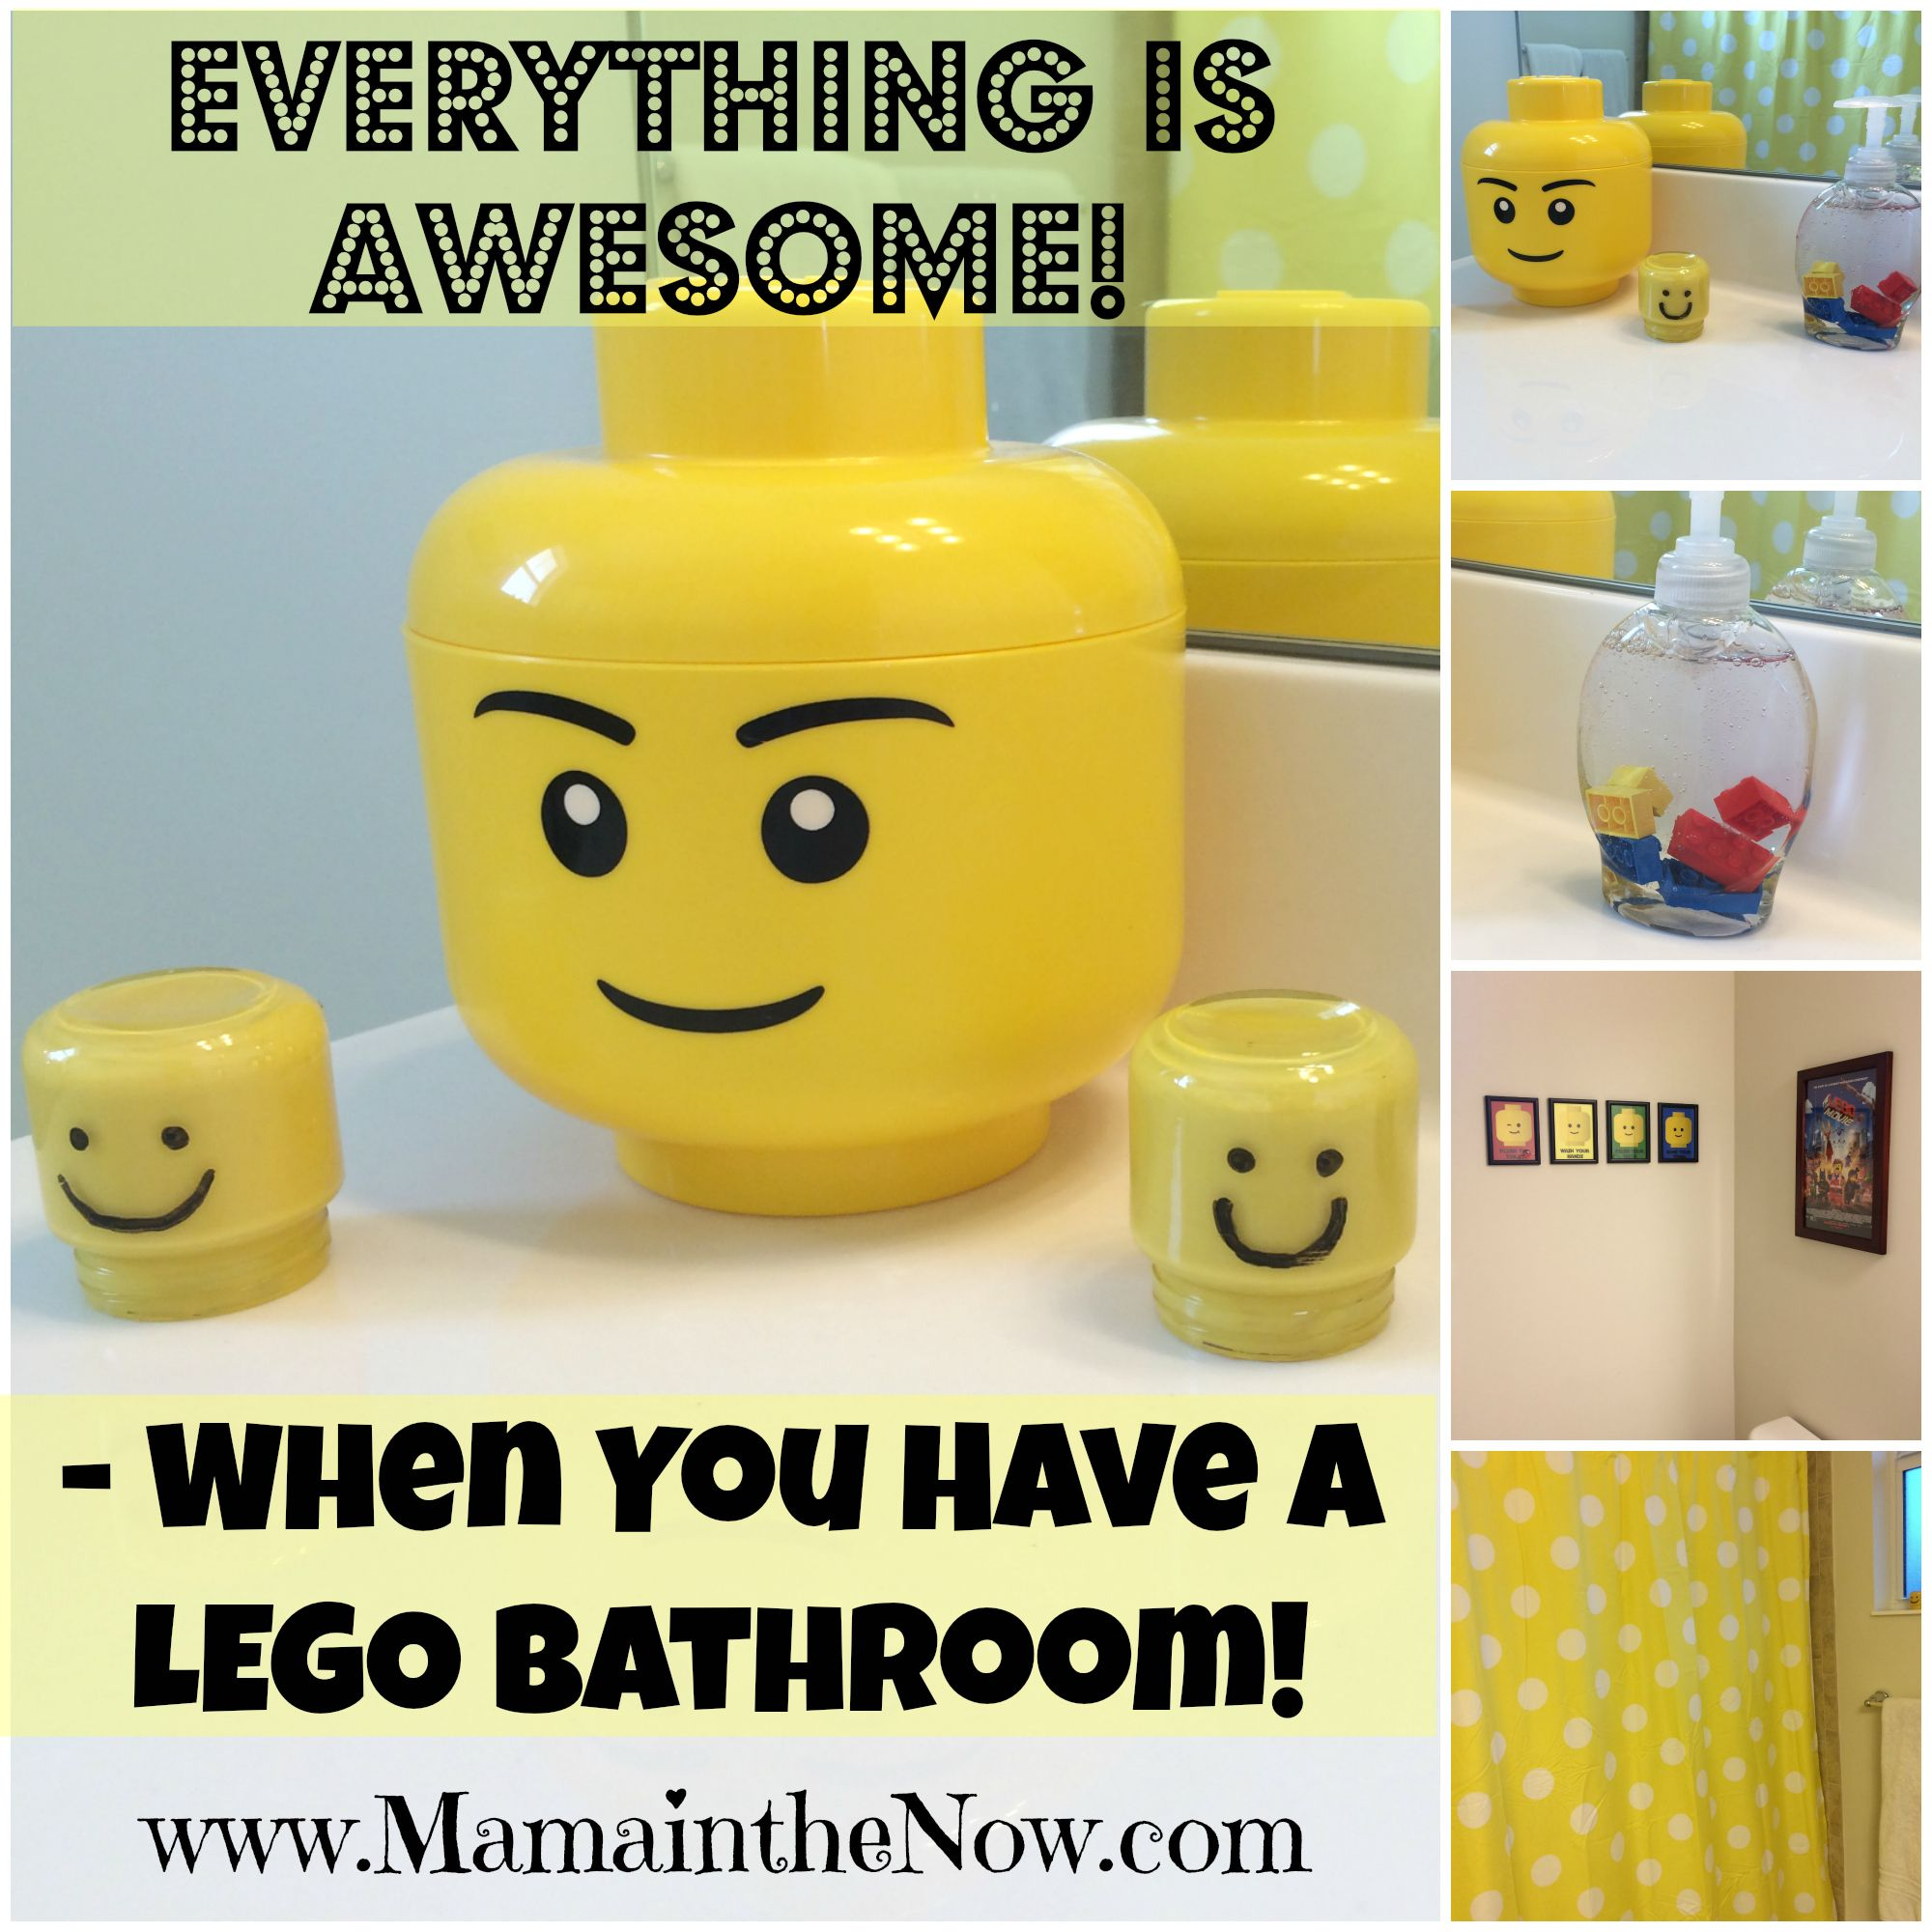 Attirant Everything Is Awesome When You Have A LEGO Bathroom